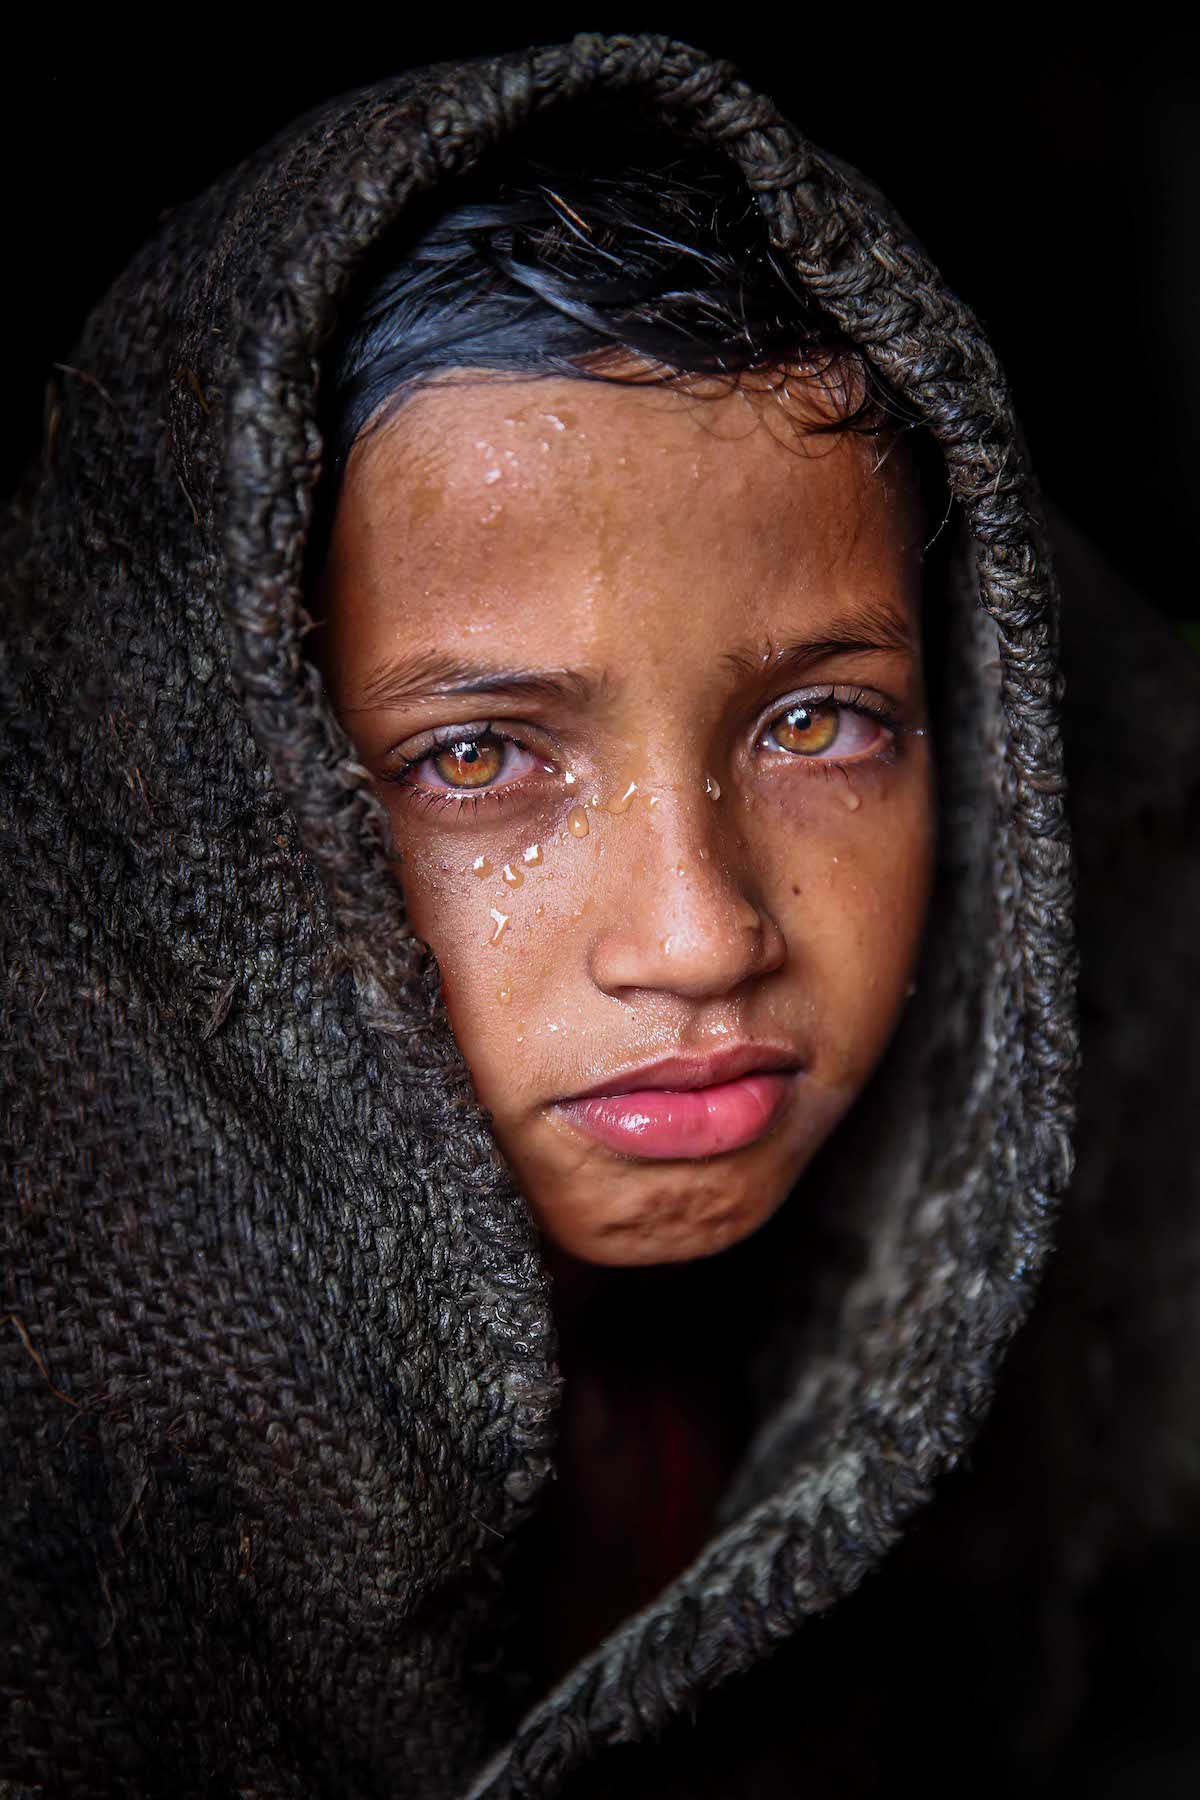 Powerful Portraits of Marginalized Children in Bangladesh by Mou Aysha